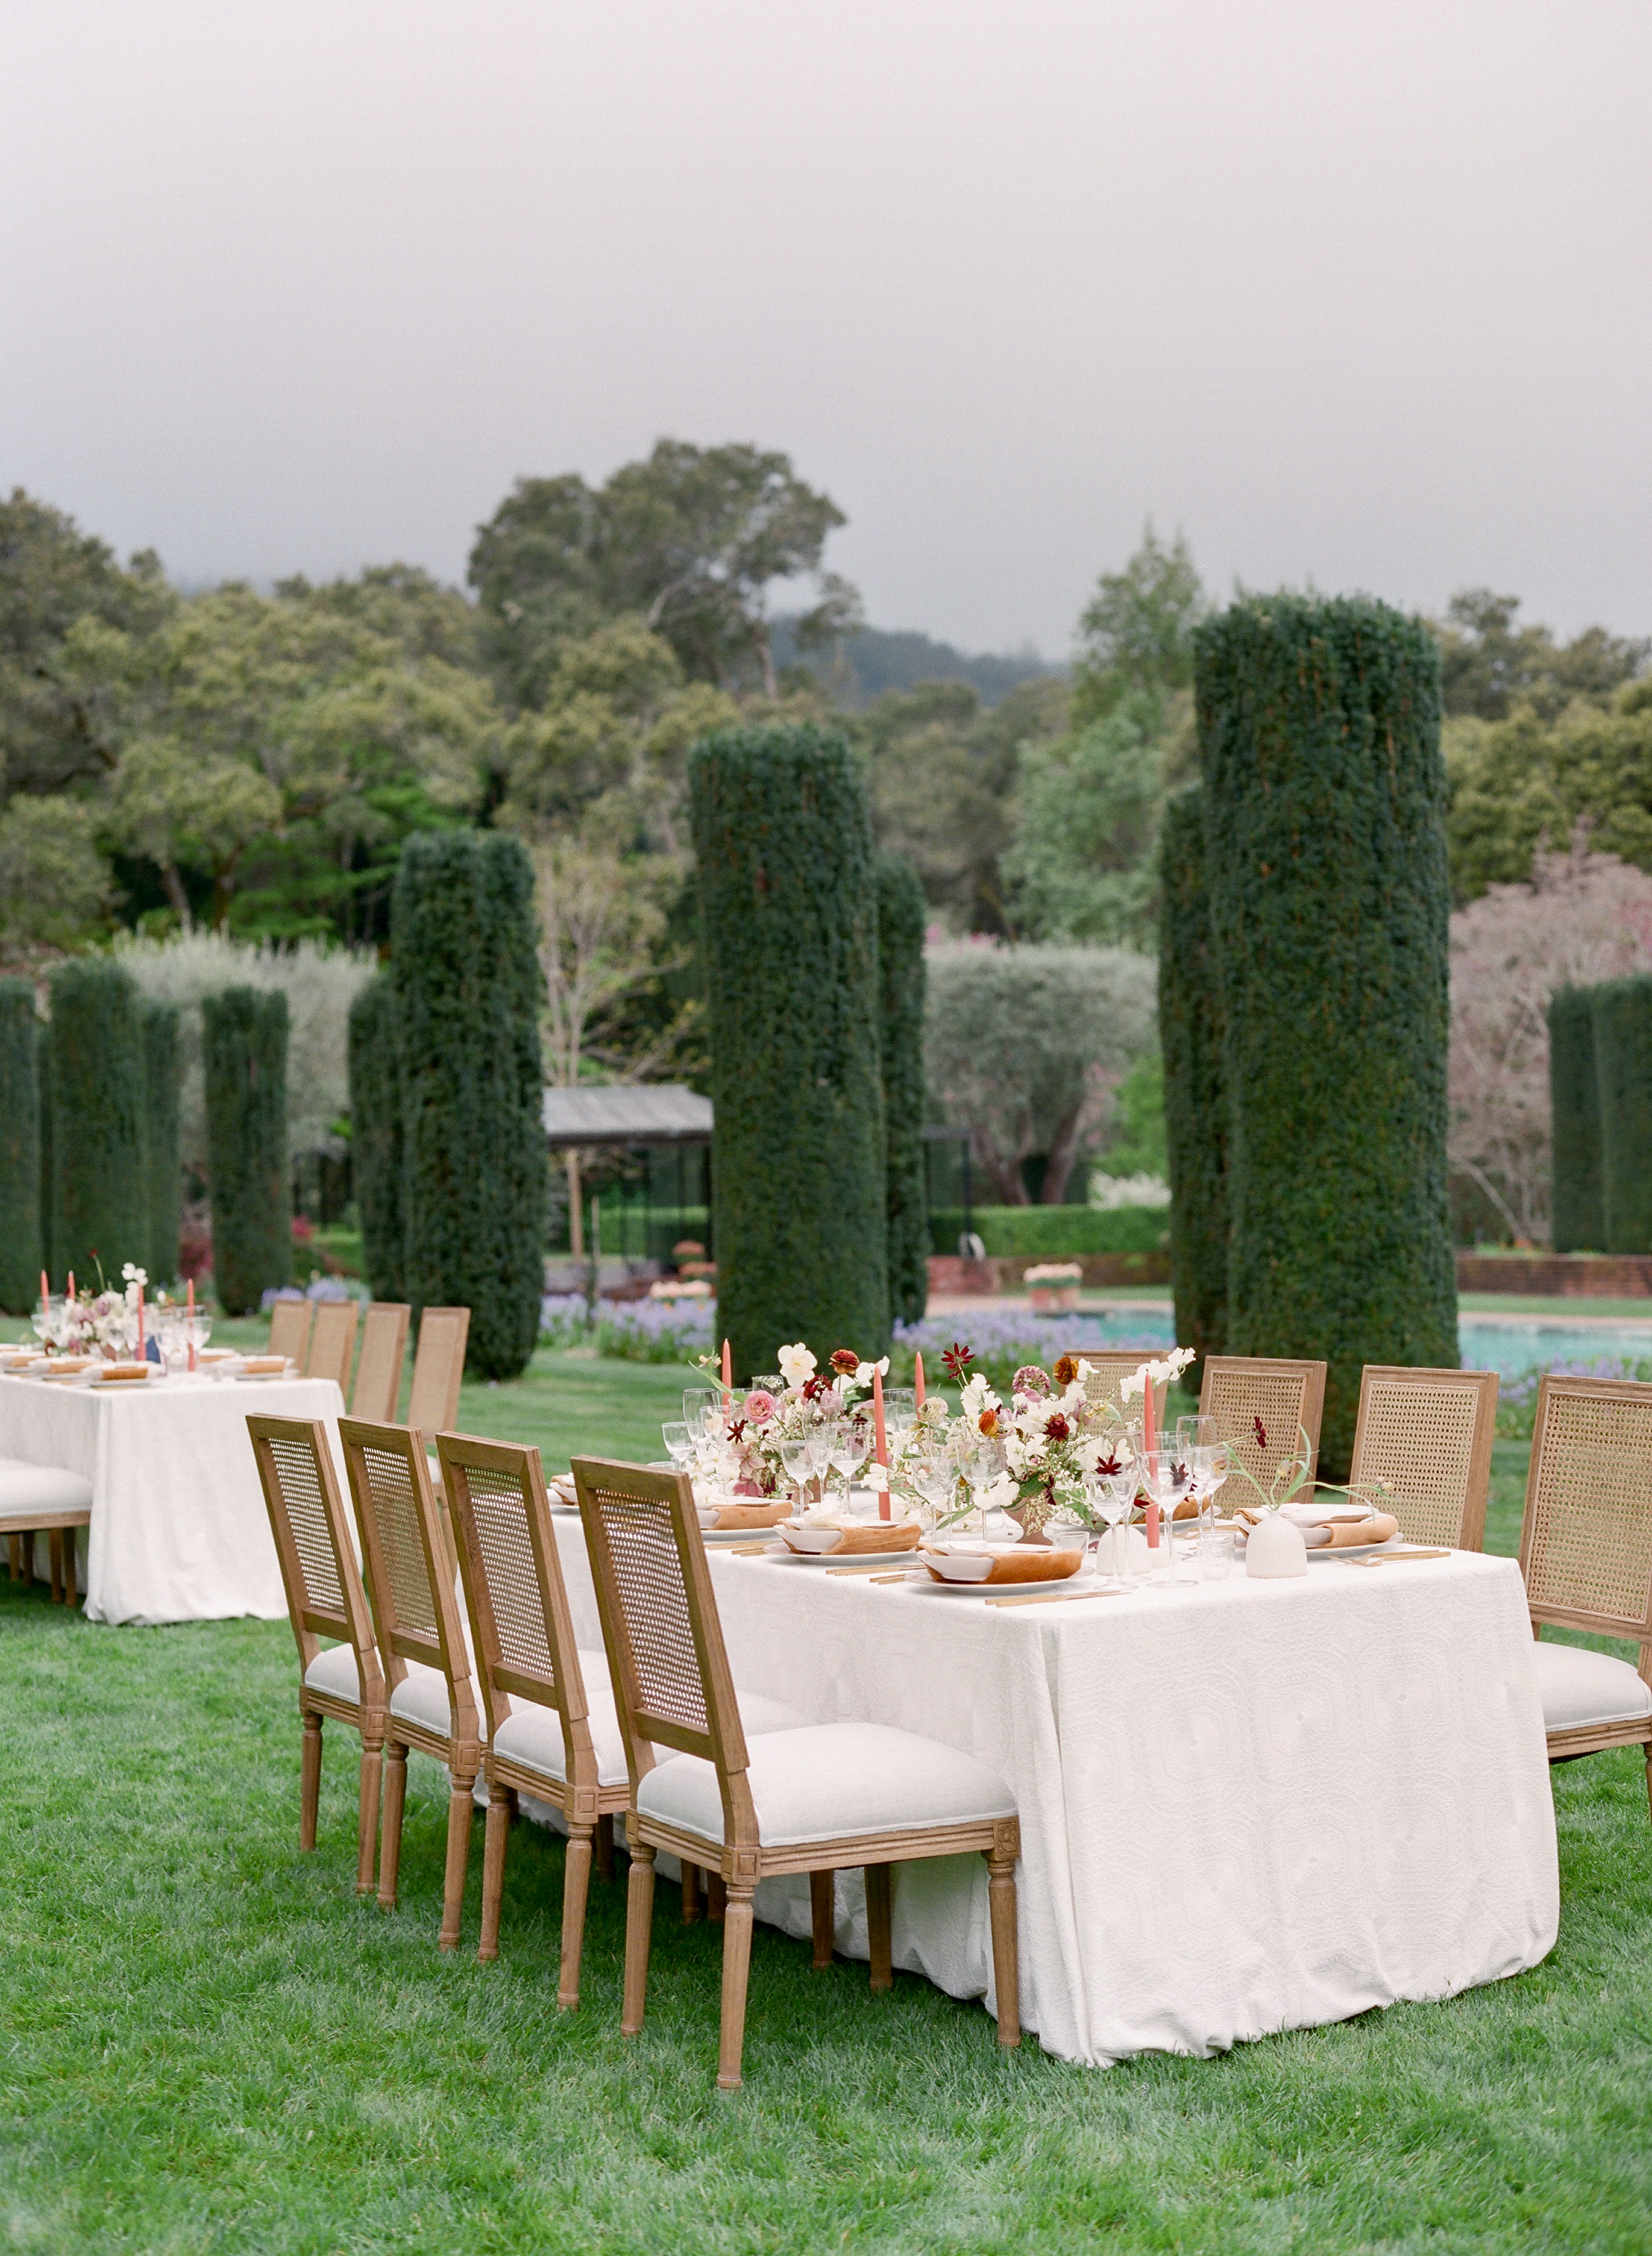 Filoli | Filoli Garden | Wedding | Amanda Crean Photography | Bustle Events | luxury wedding